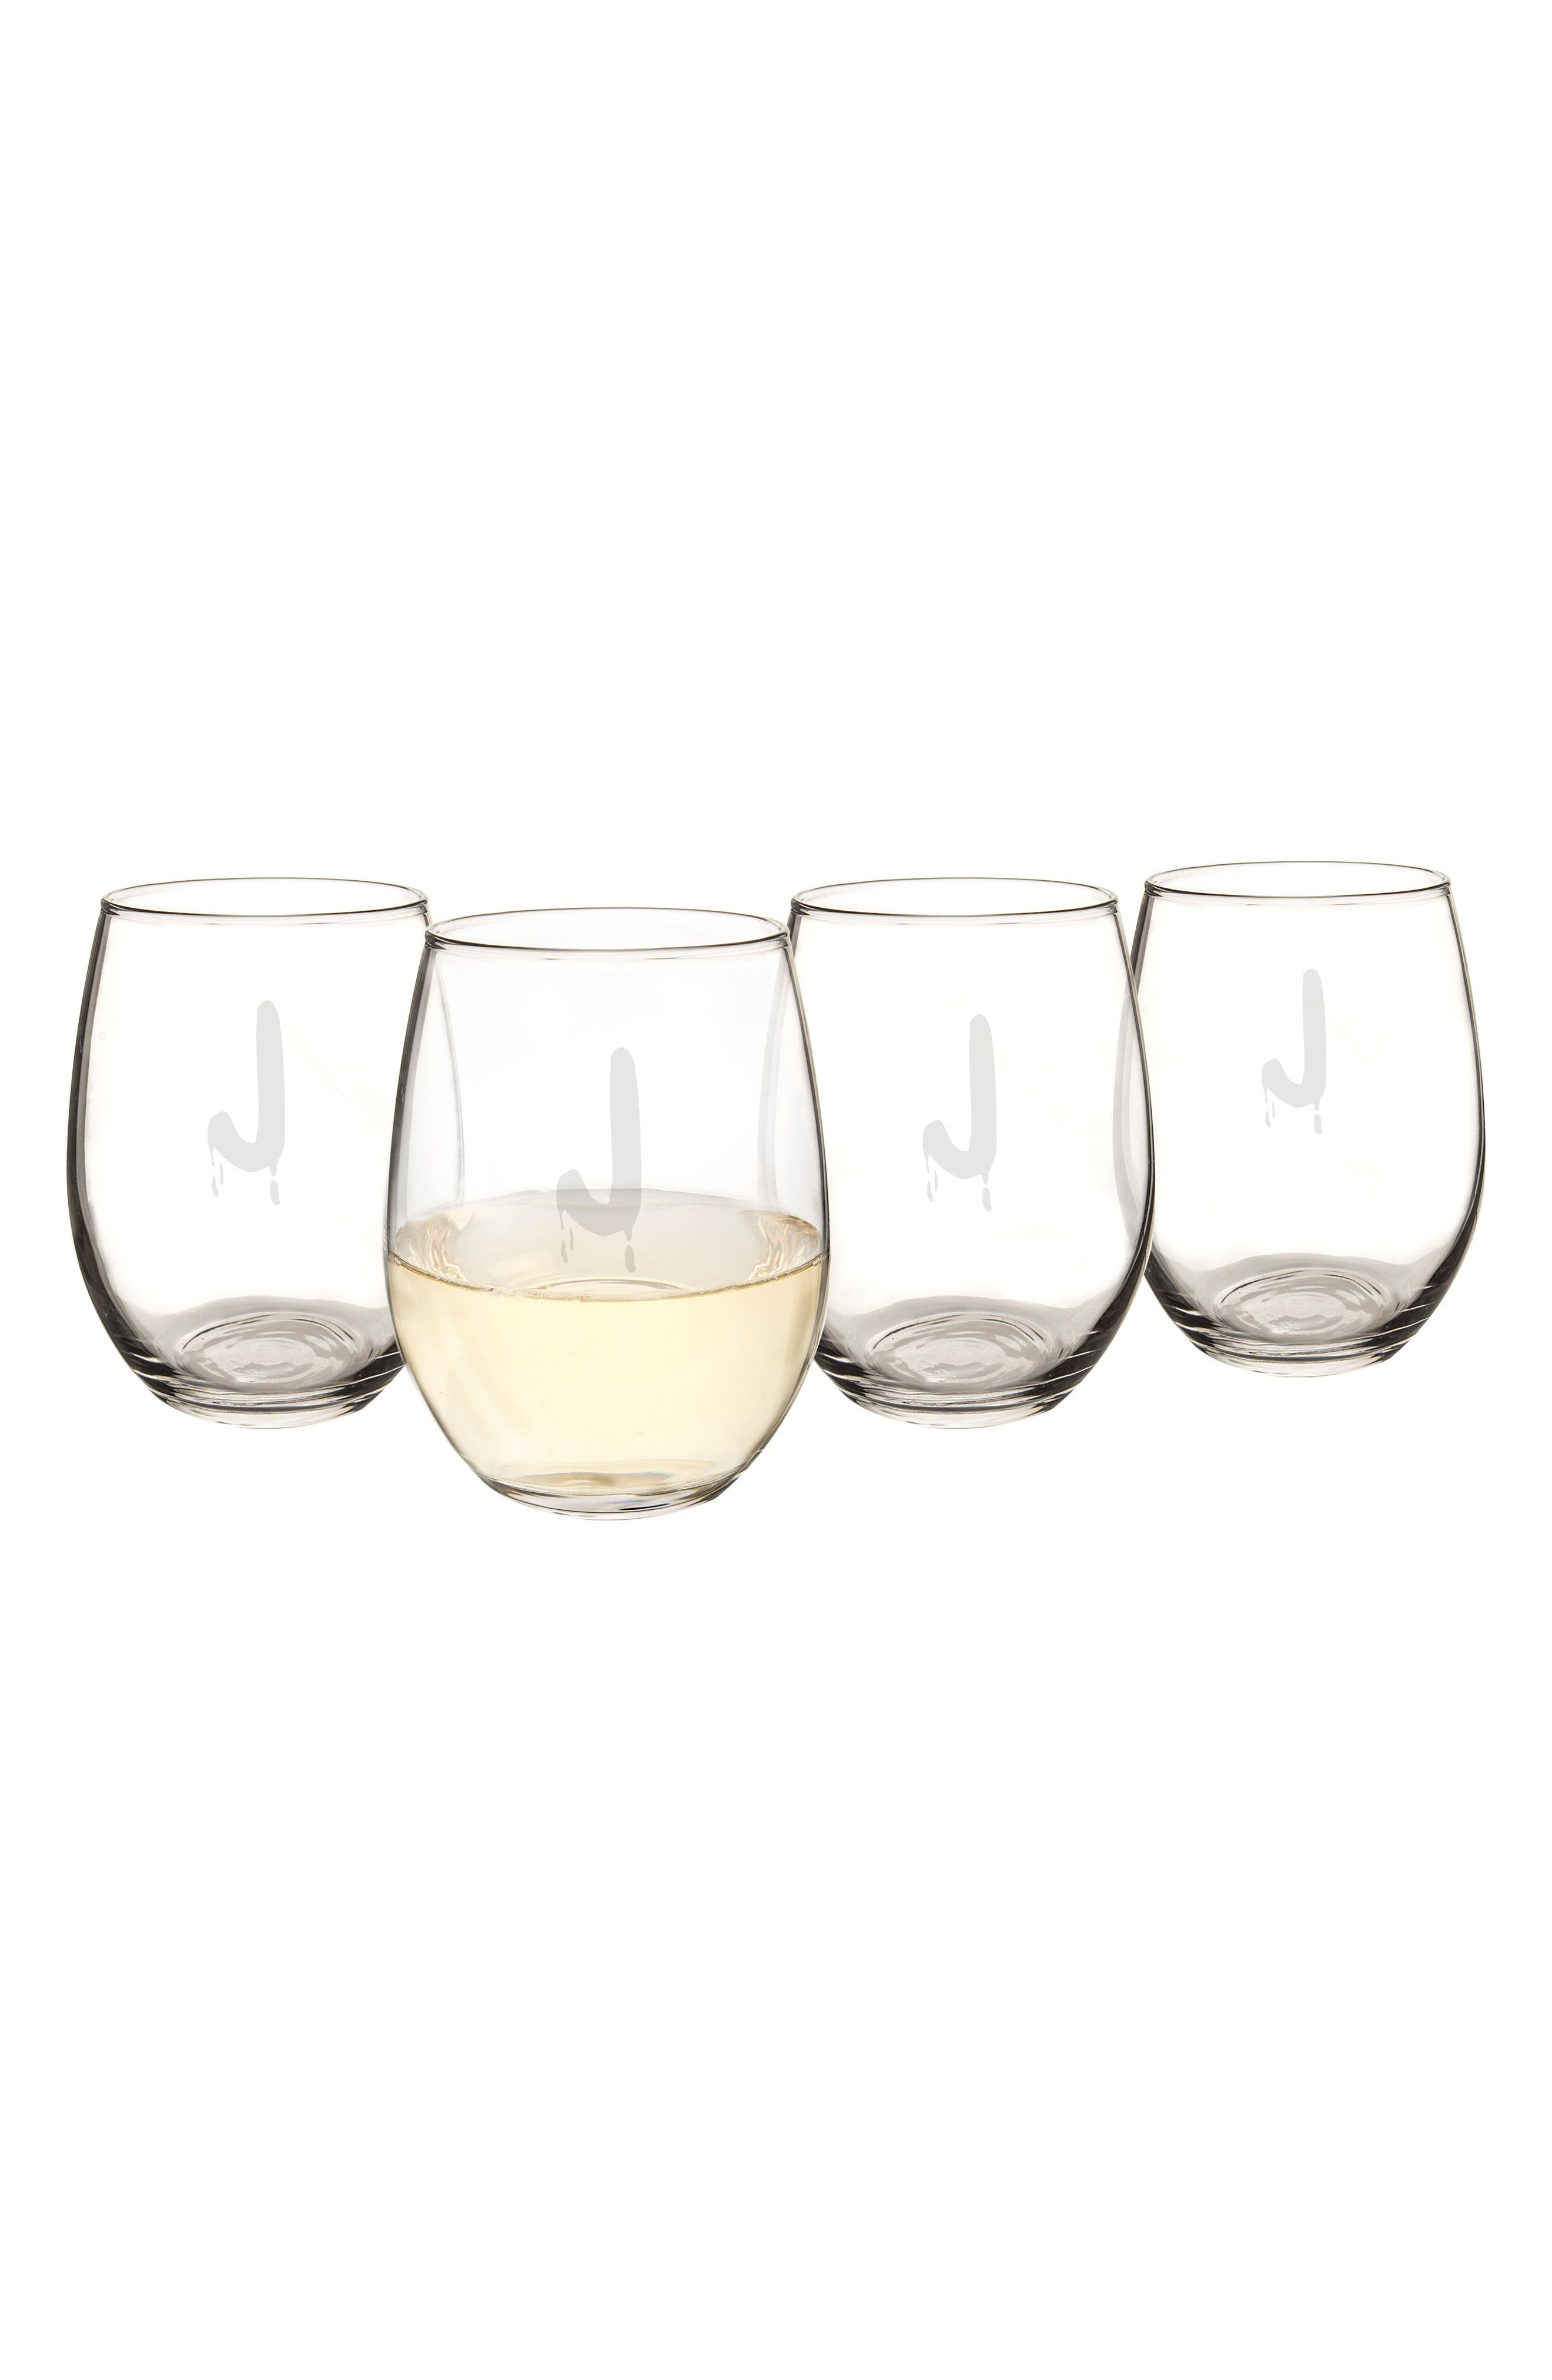 Cathy's Concepts Spooky Monogram Set of 4 Stemless Wine Glasses